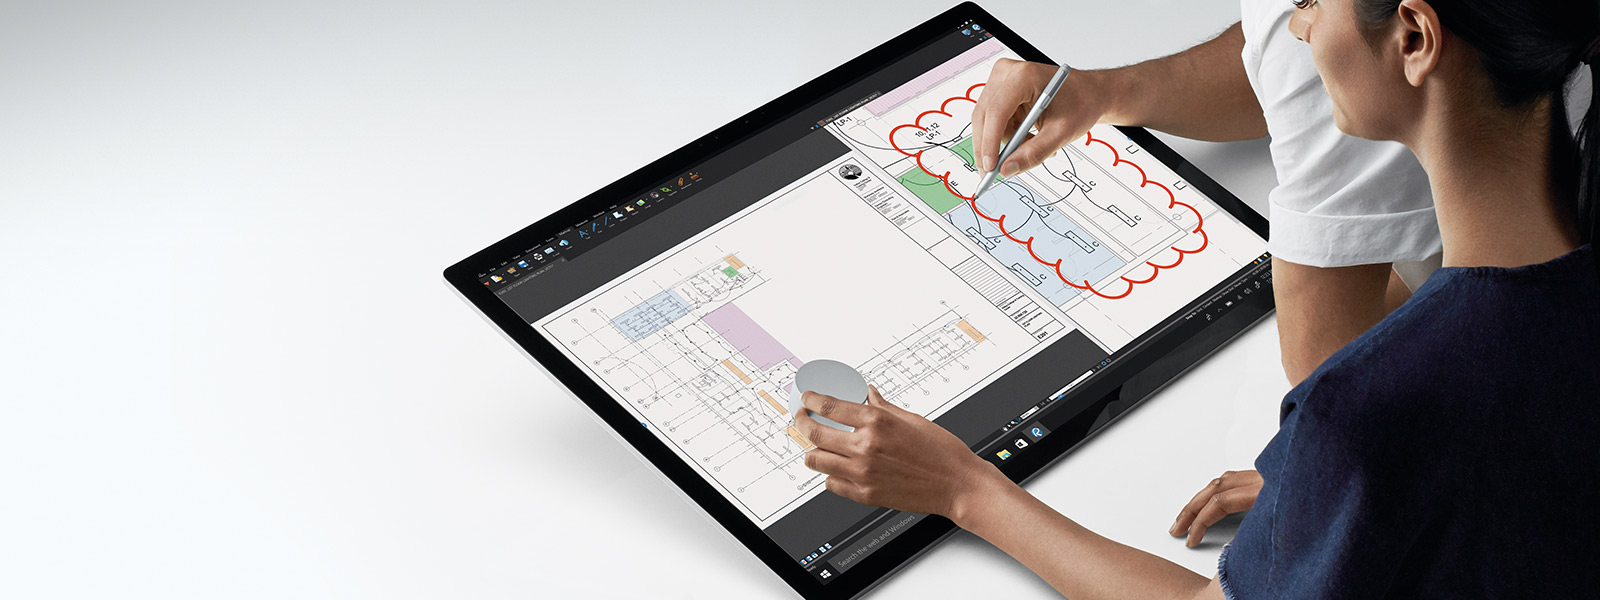 Two persons interacting with the Surface Studio with the Surface Dial and Surface Pen